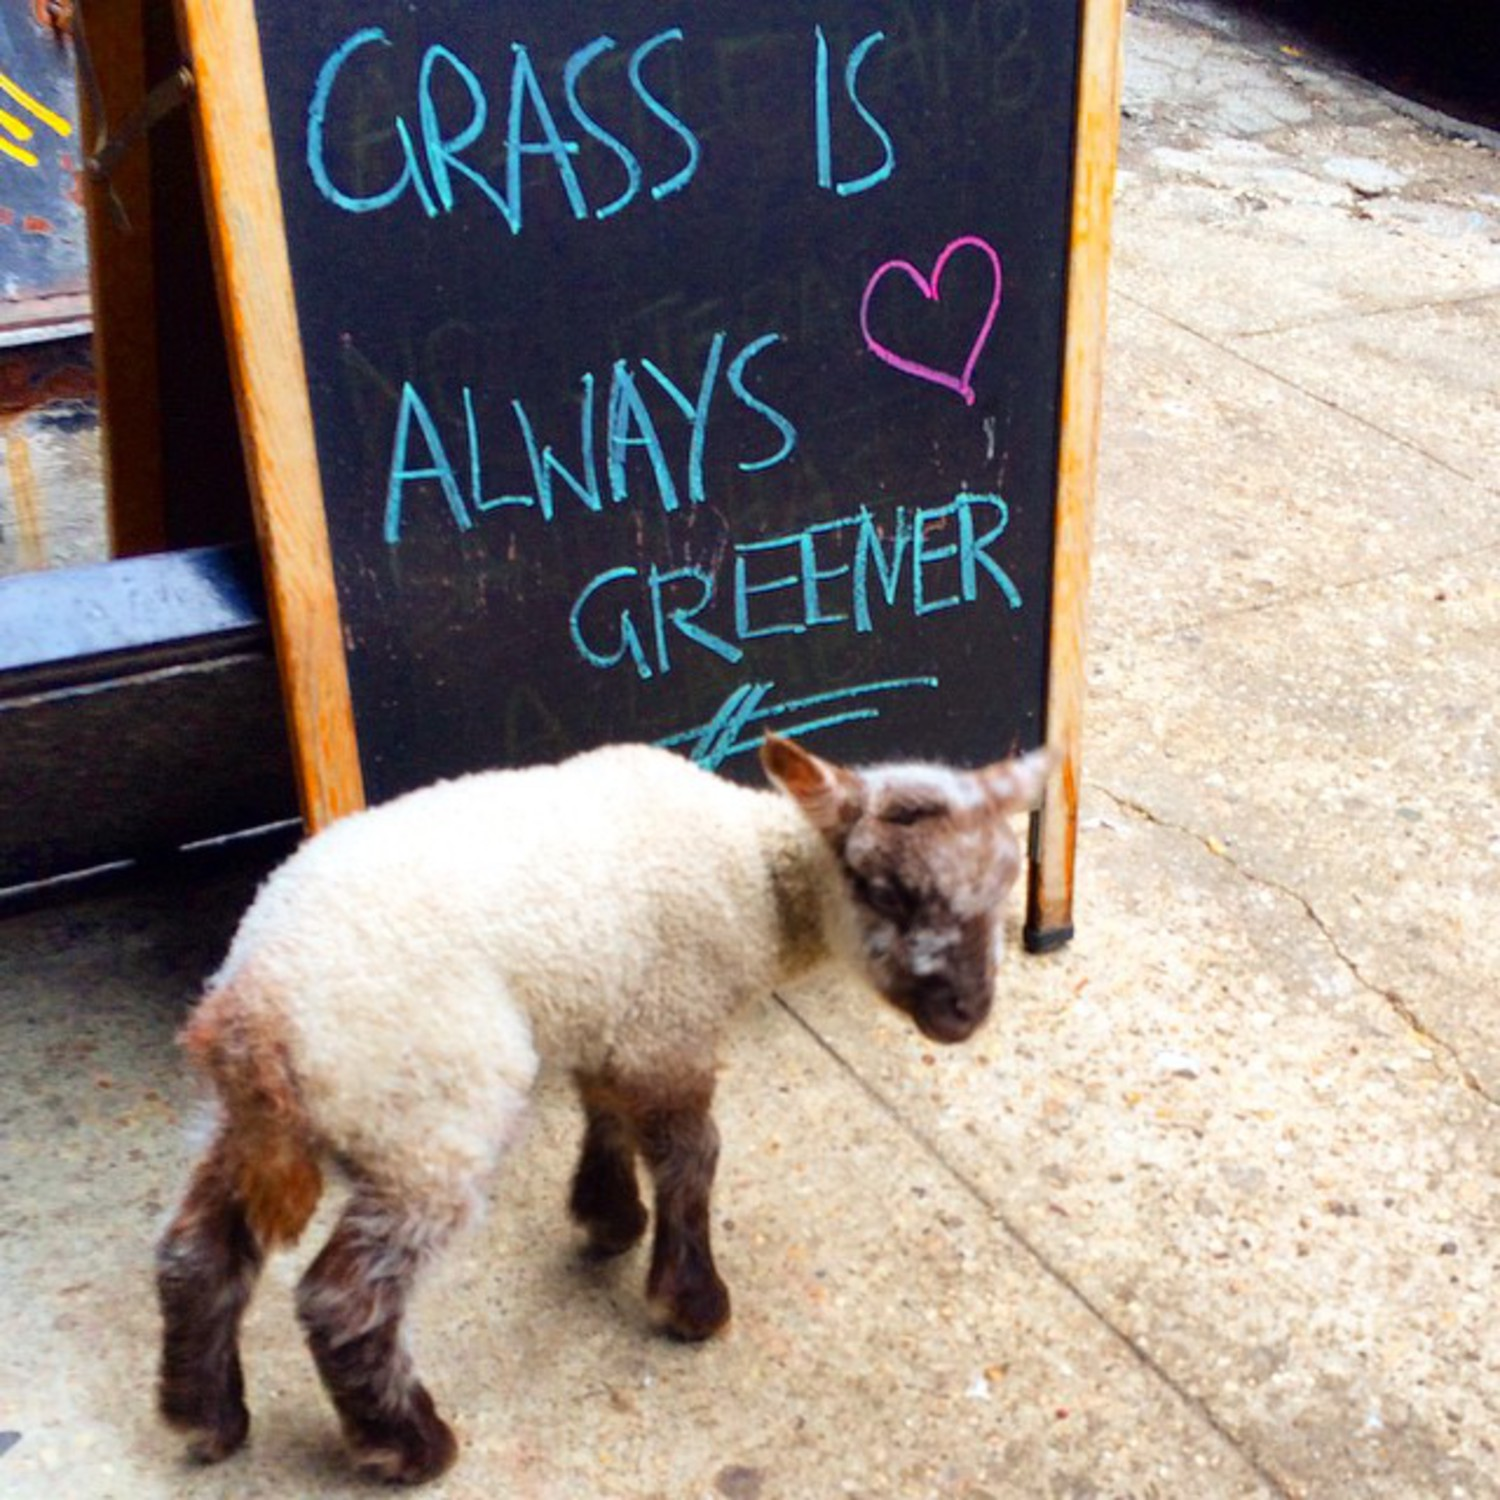 Smokey, here! Reminding everyone to come eat at Black Tree, where the grass is always greener... well, except for the ducks. Whatever. I'm just glad it isn't me week! #duckweek #blacktreenyc #local #farmtotable #farmtocity #sheeptochef #smokeydalamb #mamasandy #whatisgrass #cityslicker